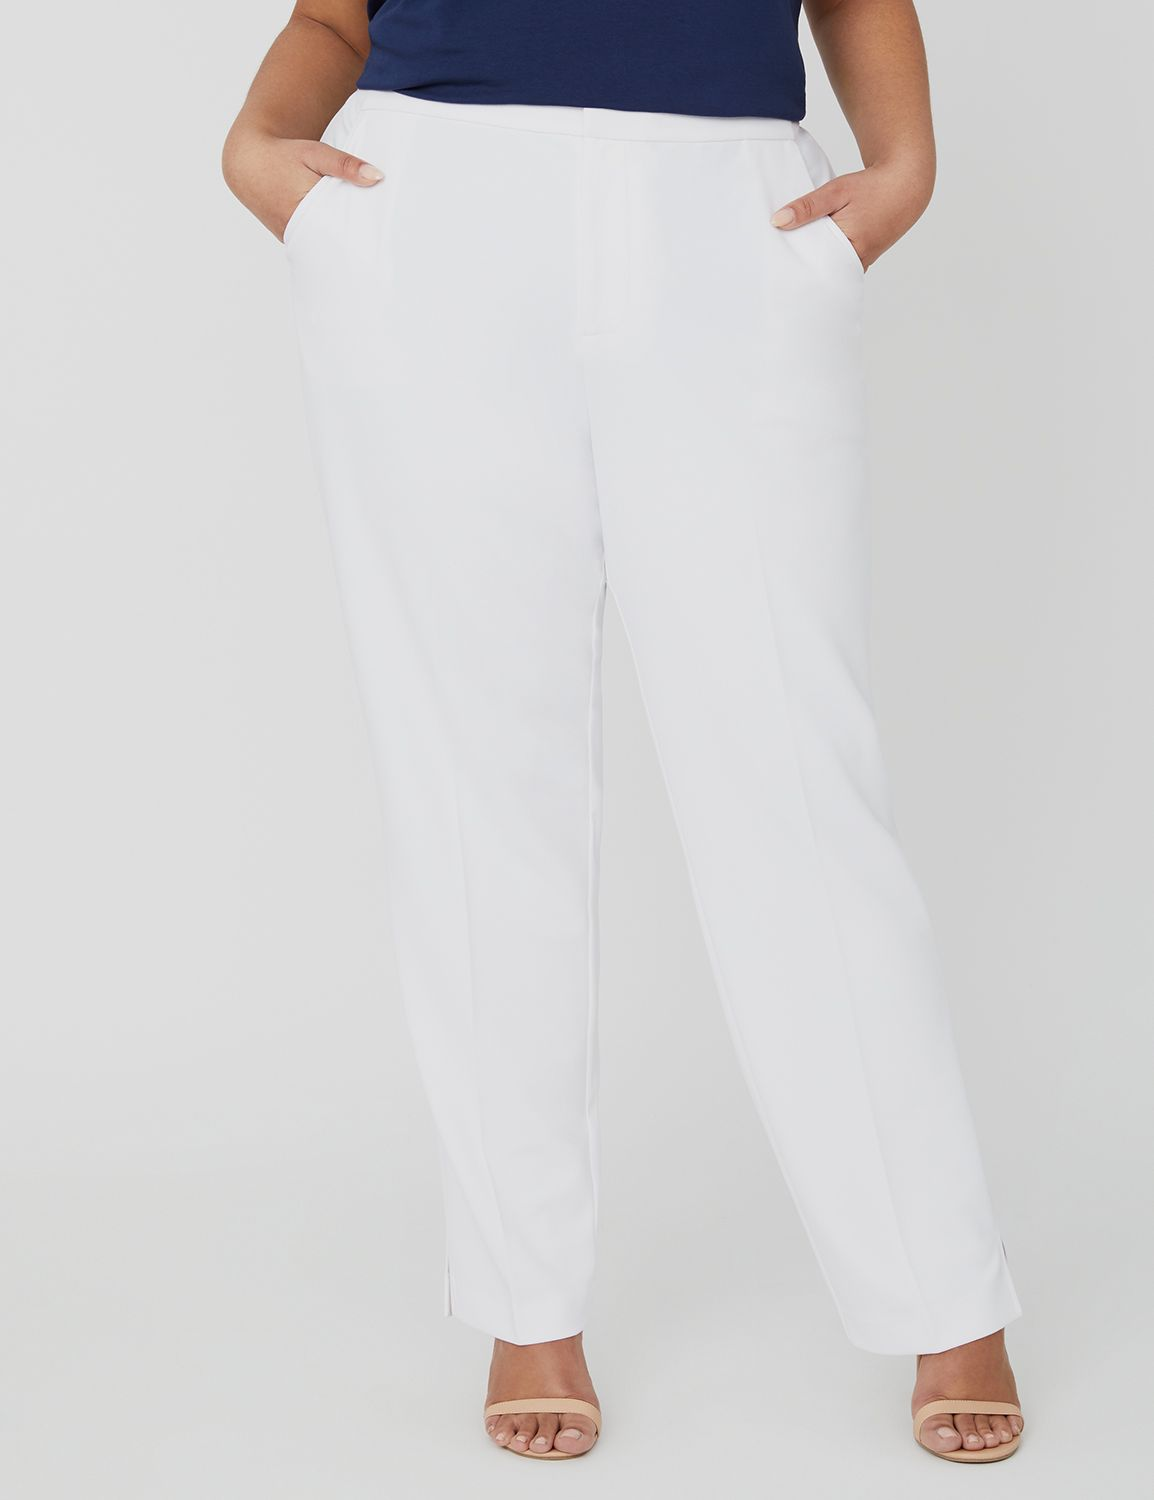 Black Label Soft Crepe Pant 1088525 Soft Crepe Pant with Elasti MP-300098645